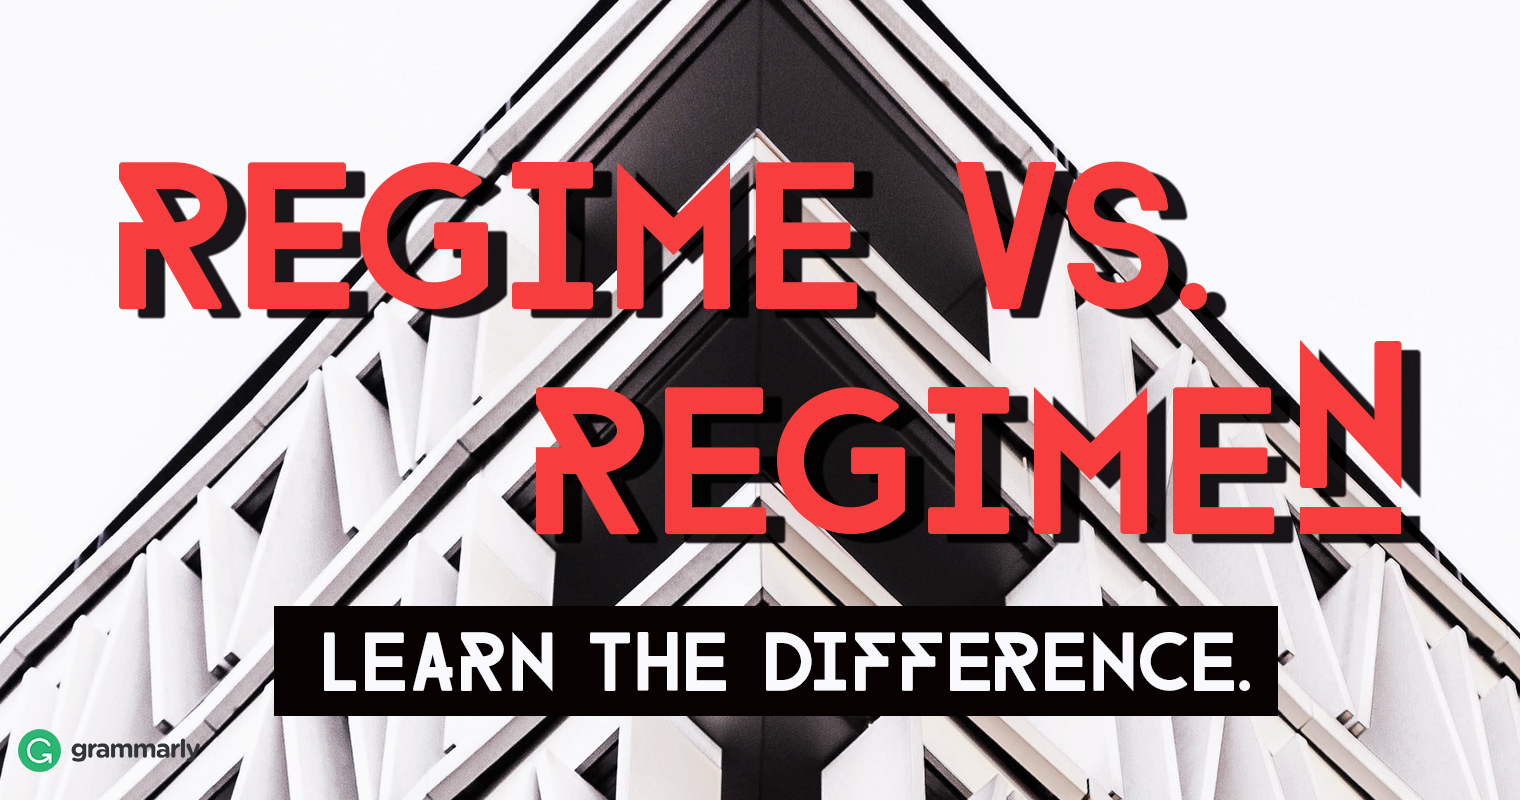 Regime vs. Regimen—Learn the Difference image